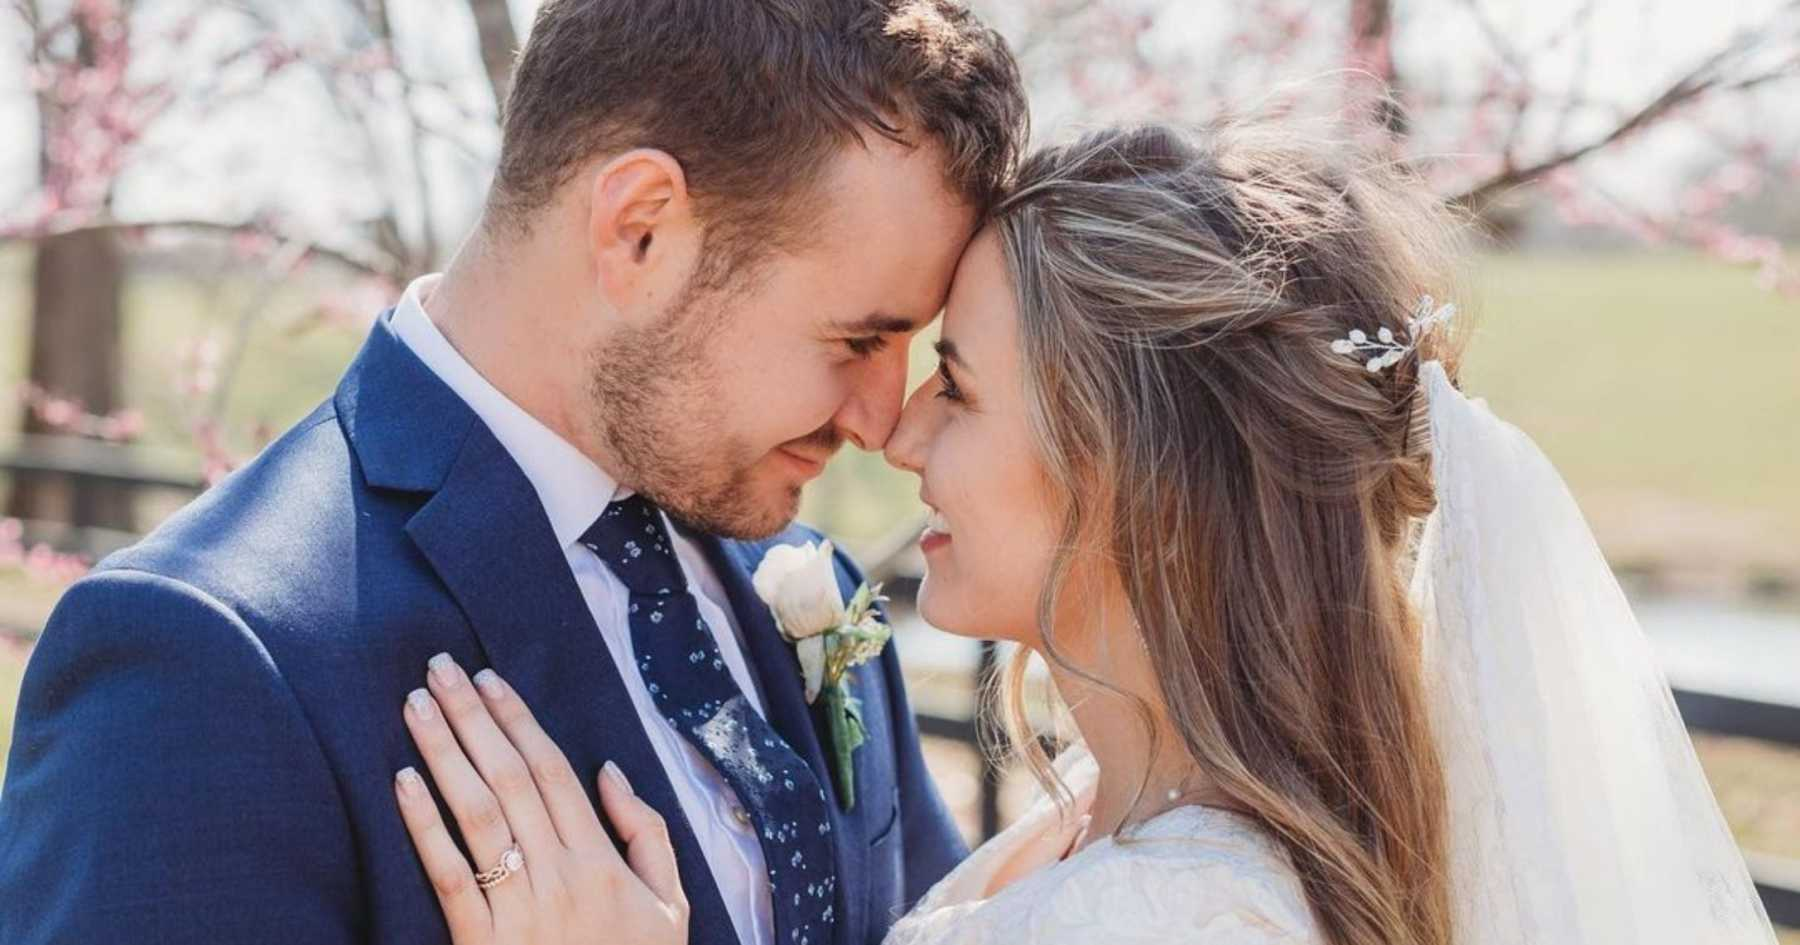 Fans Caught Off Guard By Surprise Duggar Wedding And Voice Concerns Over The Secrecy Cafemom Com